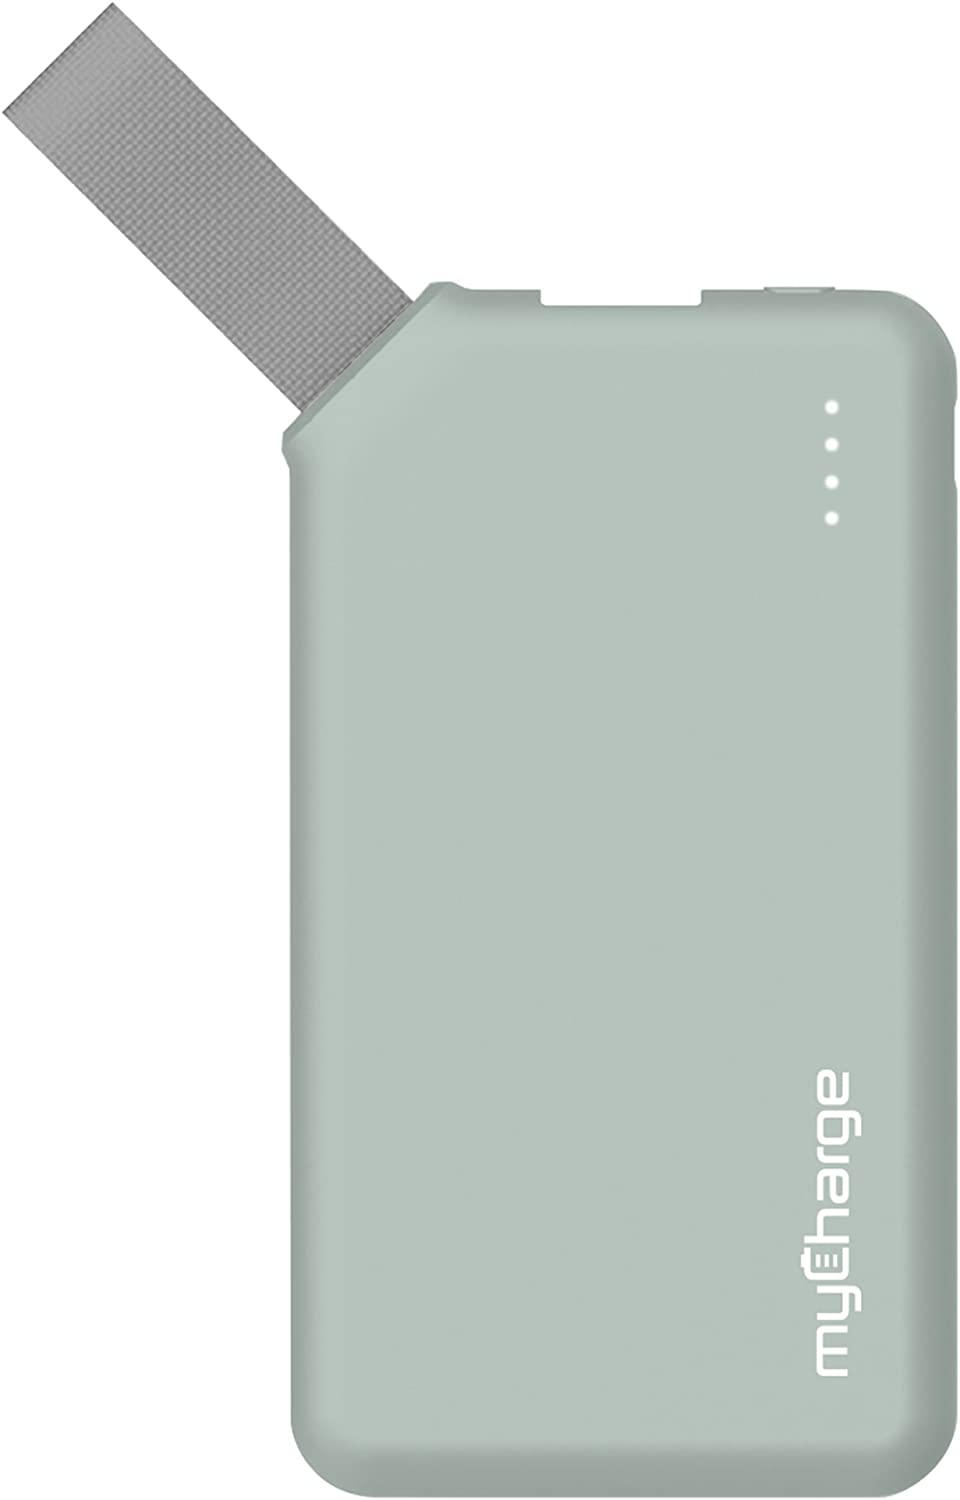 myCharge GO Mini Portable Charger 2600mAh External Battery Pack Power Bank for Cell Phones (Apple iPhone XS, XS Max, XR, X, 8, 7, 6, SE, 5, Samsung Galaxy, LG, Motorola, HTC, Nokia, Blackberry) Green